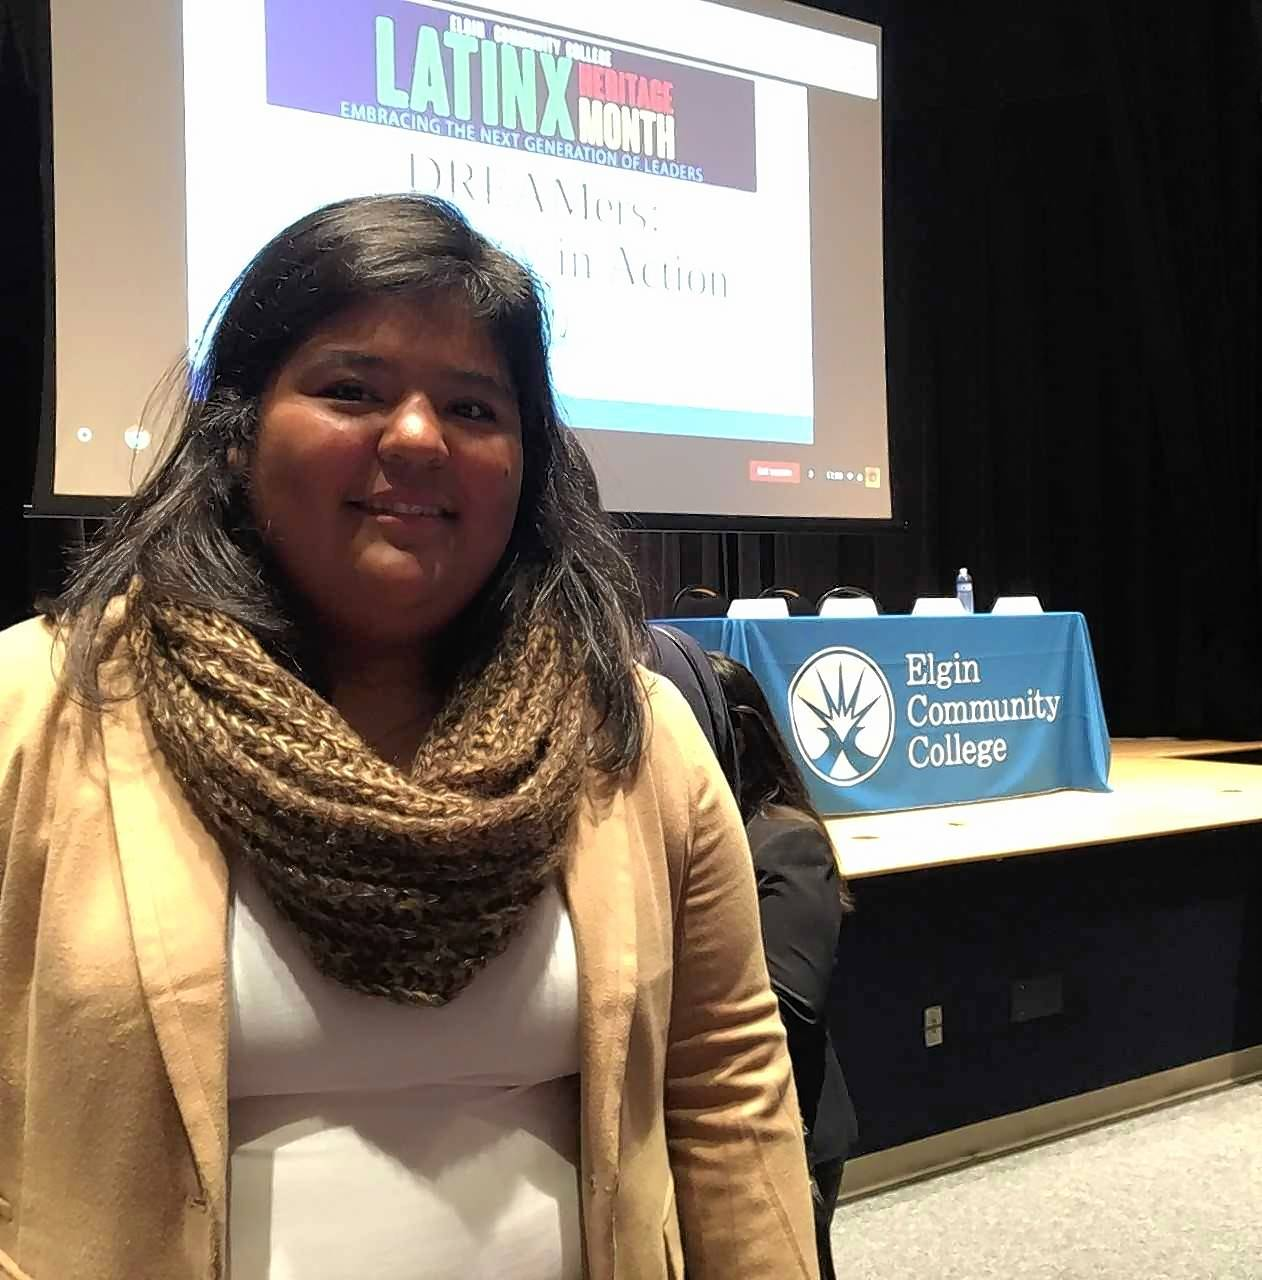 Elgin Community College student Anna Rojas talked about her experience being an undocumented immigrant under DACA protection Friday during a discussion addressing changes to immigration laws affecting students like herself at the college.